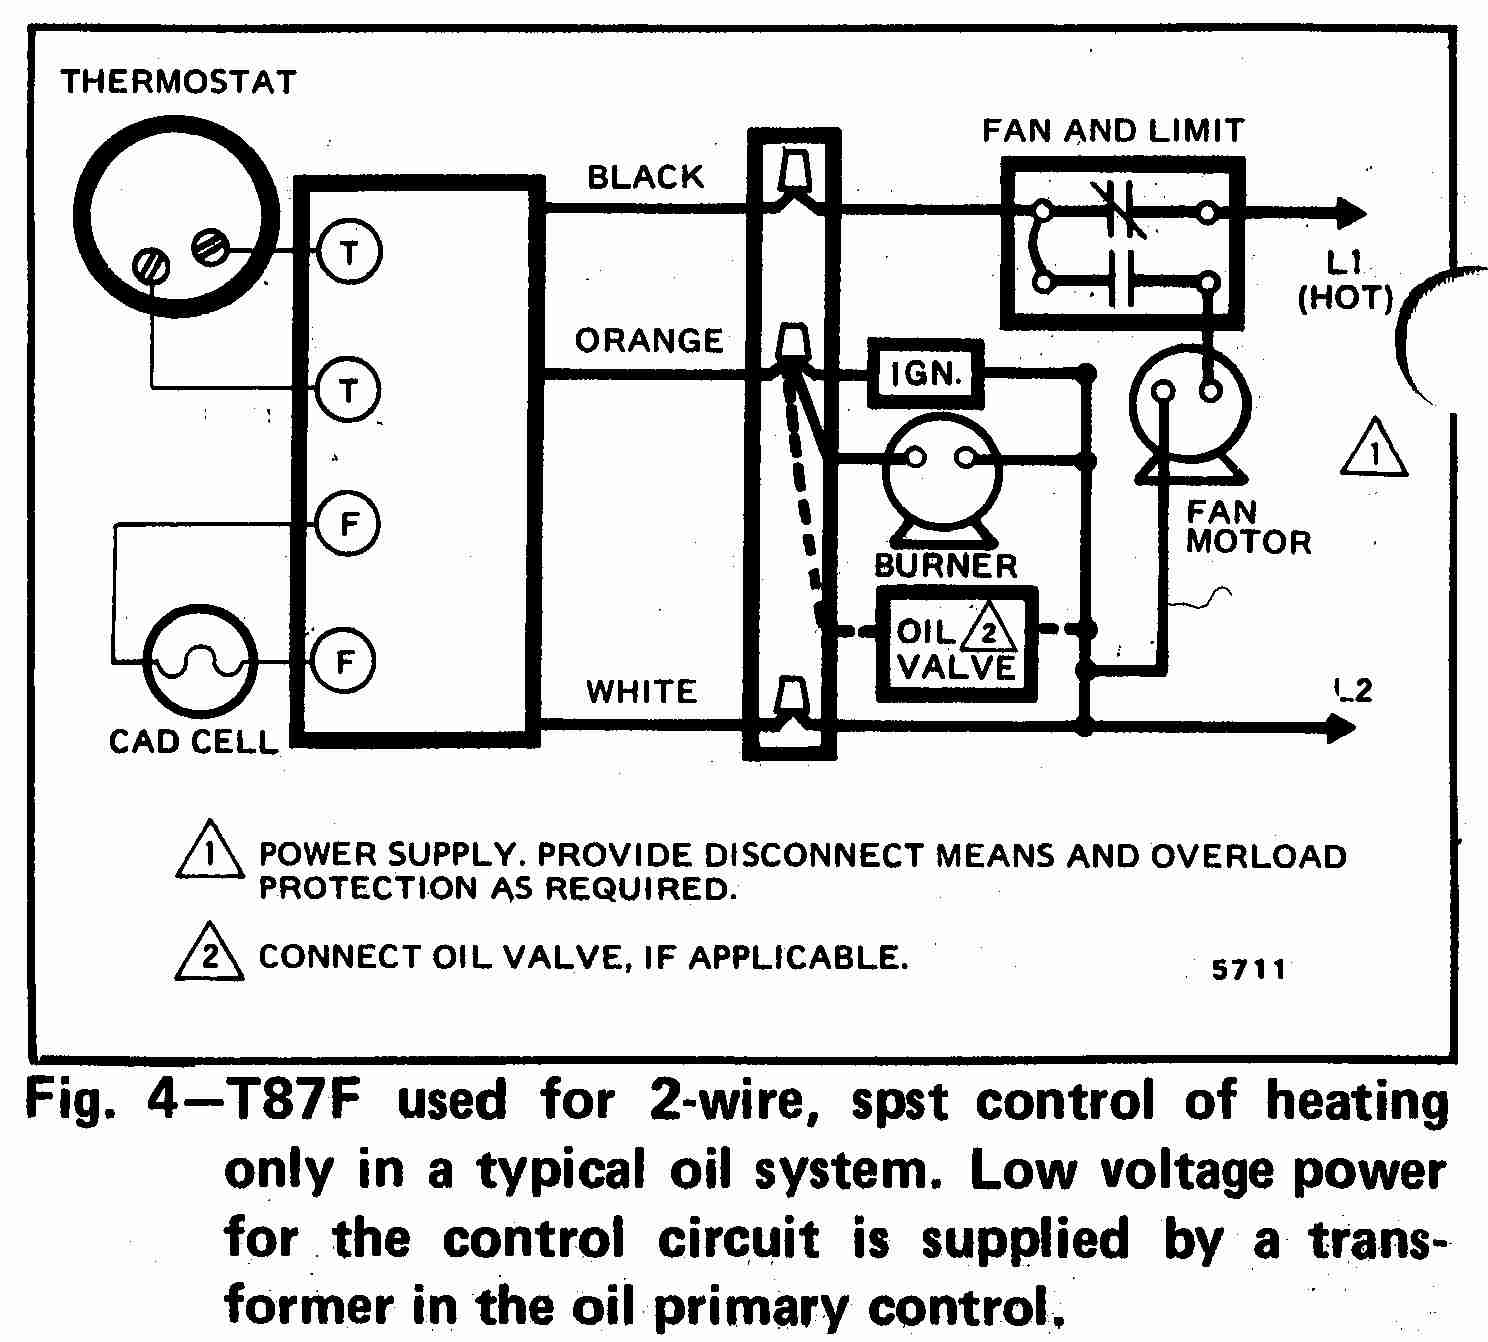 Old Dual Voltage Motor Wiring Diagram Emerson Libraries Older Air Compressor Help2wiremotorstartercontroljpg Room Thermostat Diagrams For Hvac Systemshoneywell T87f 2 Wire Spst